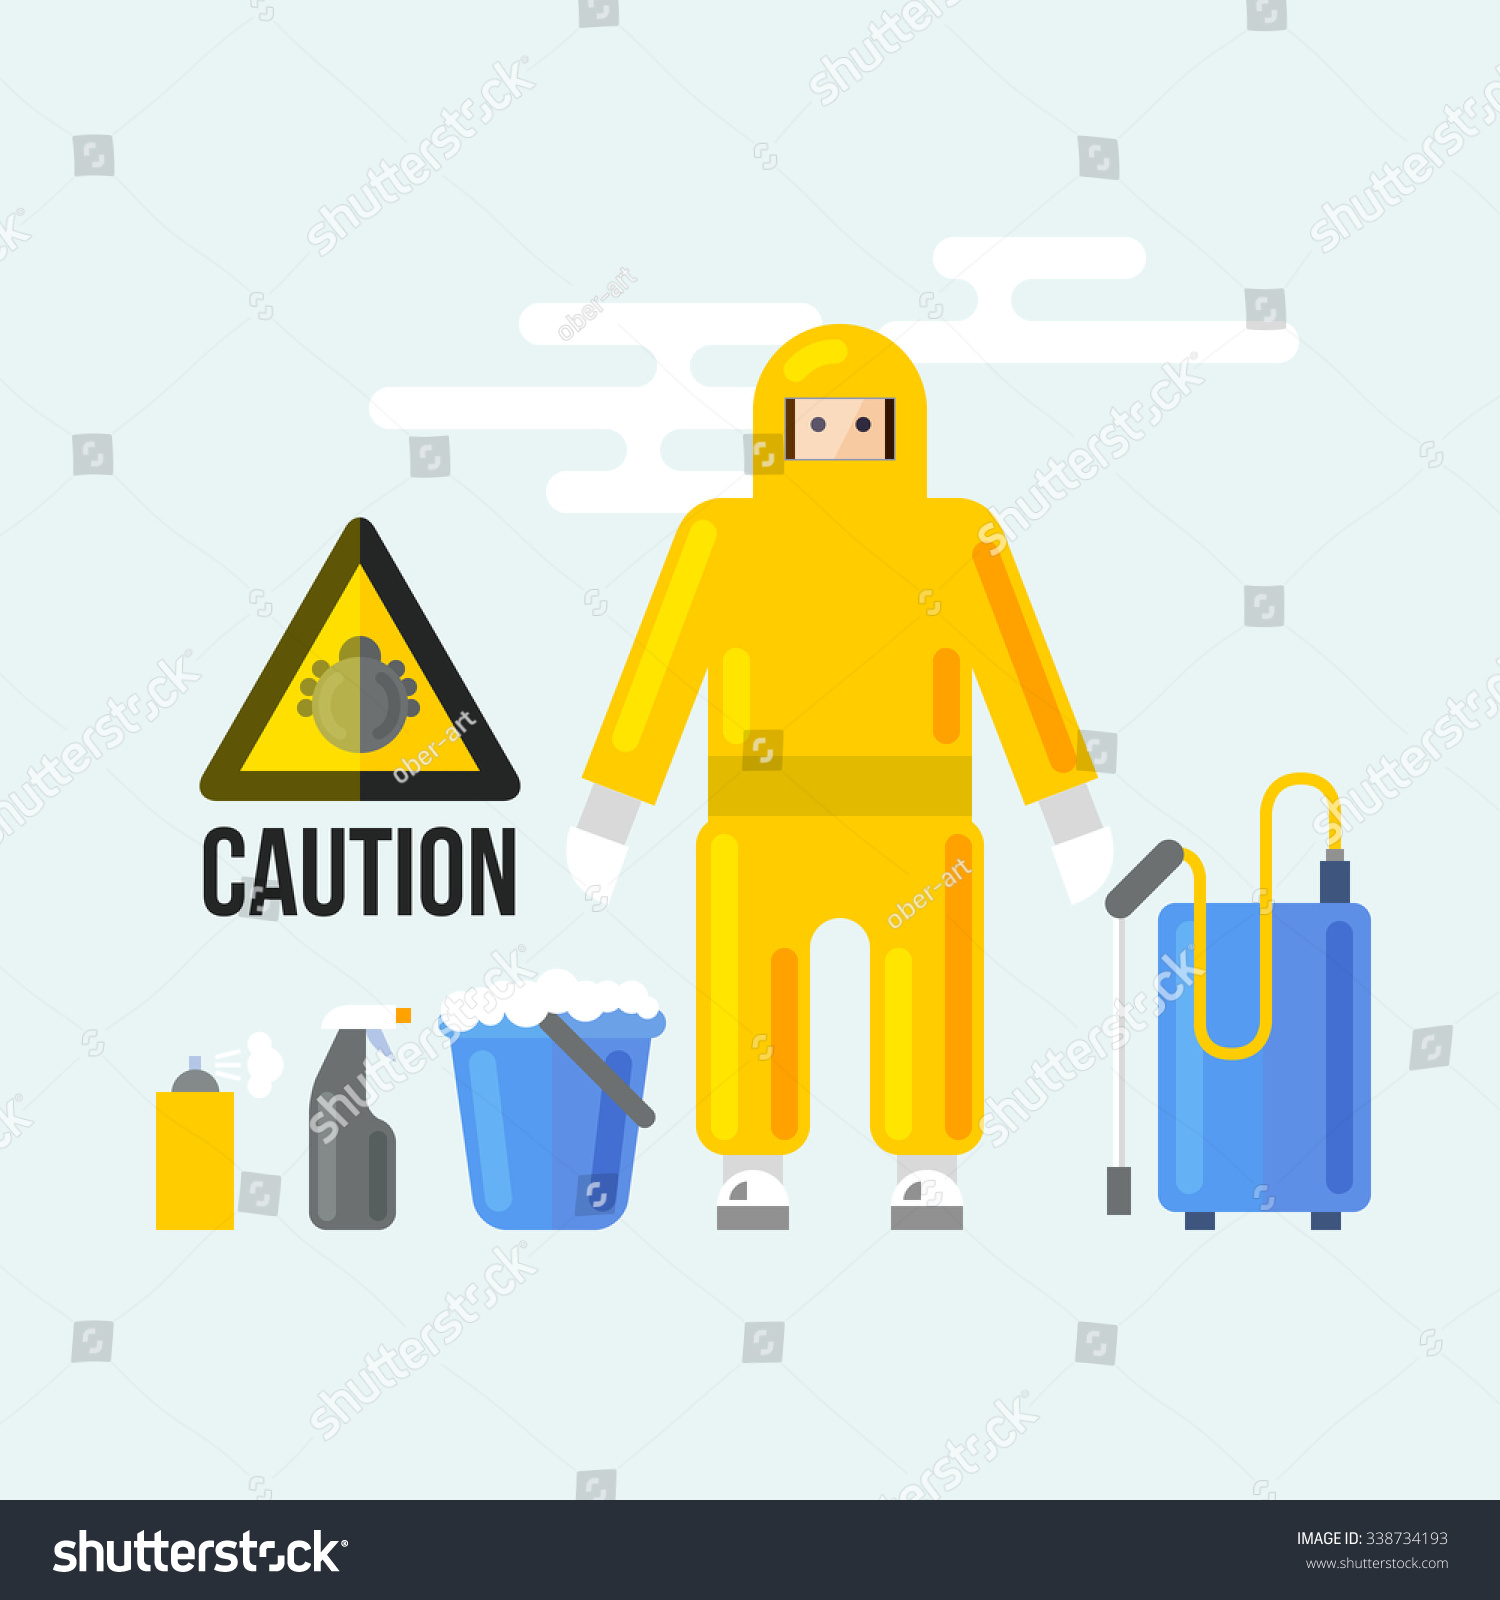 Chemical Cleaning Services : Chemical cleaning services caution attention signs stock